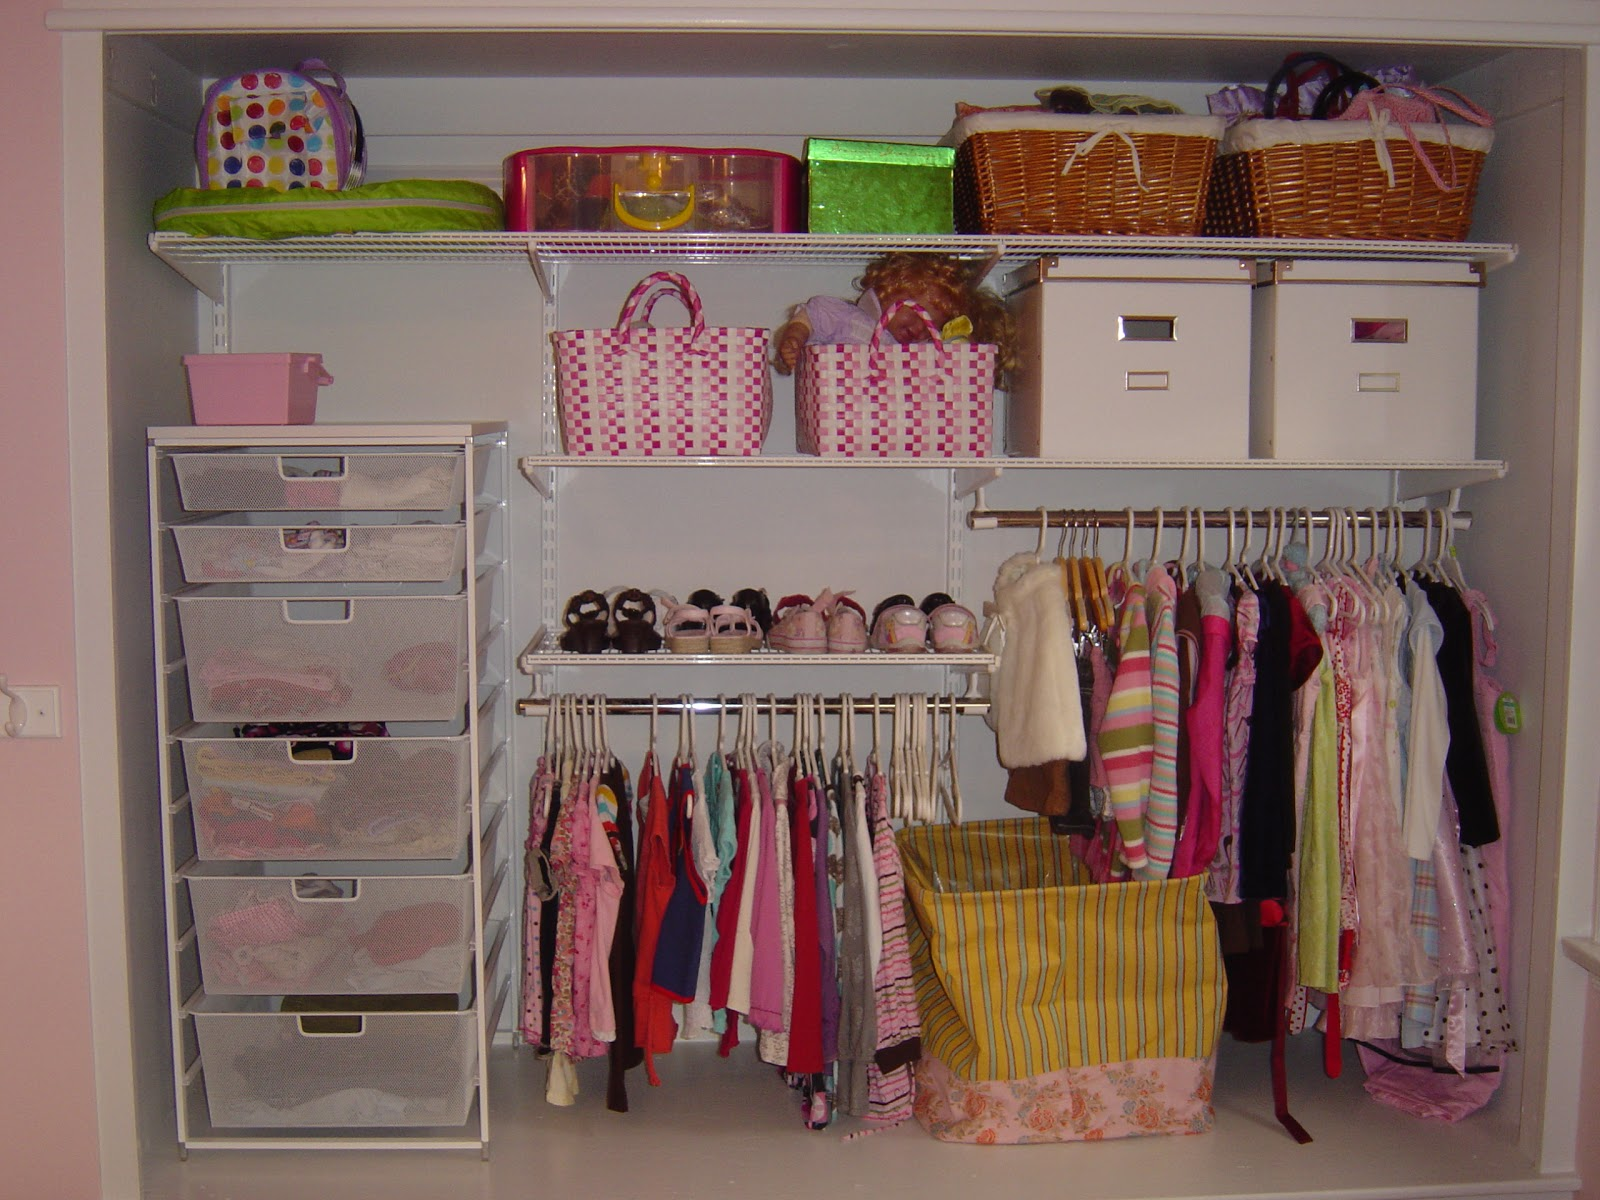 Organizing Made Fun: Kids' Room Project